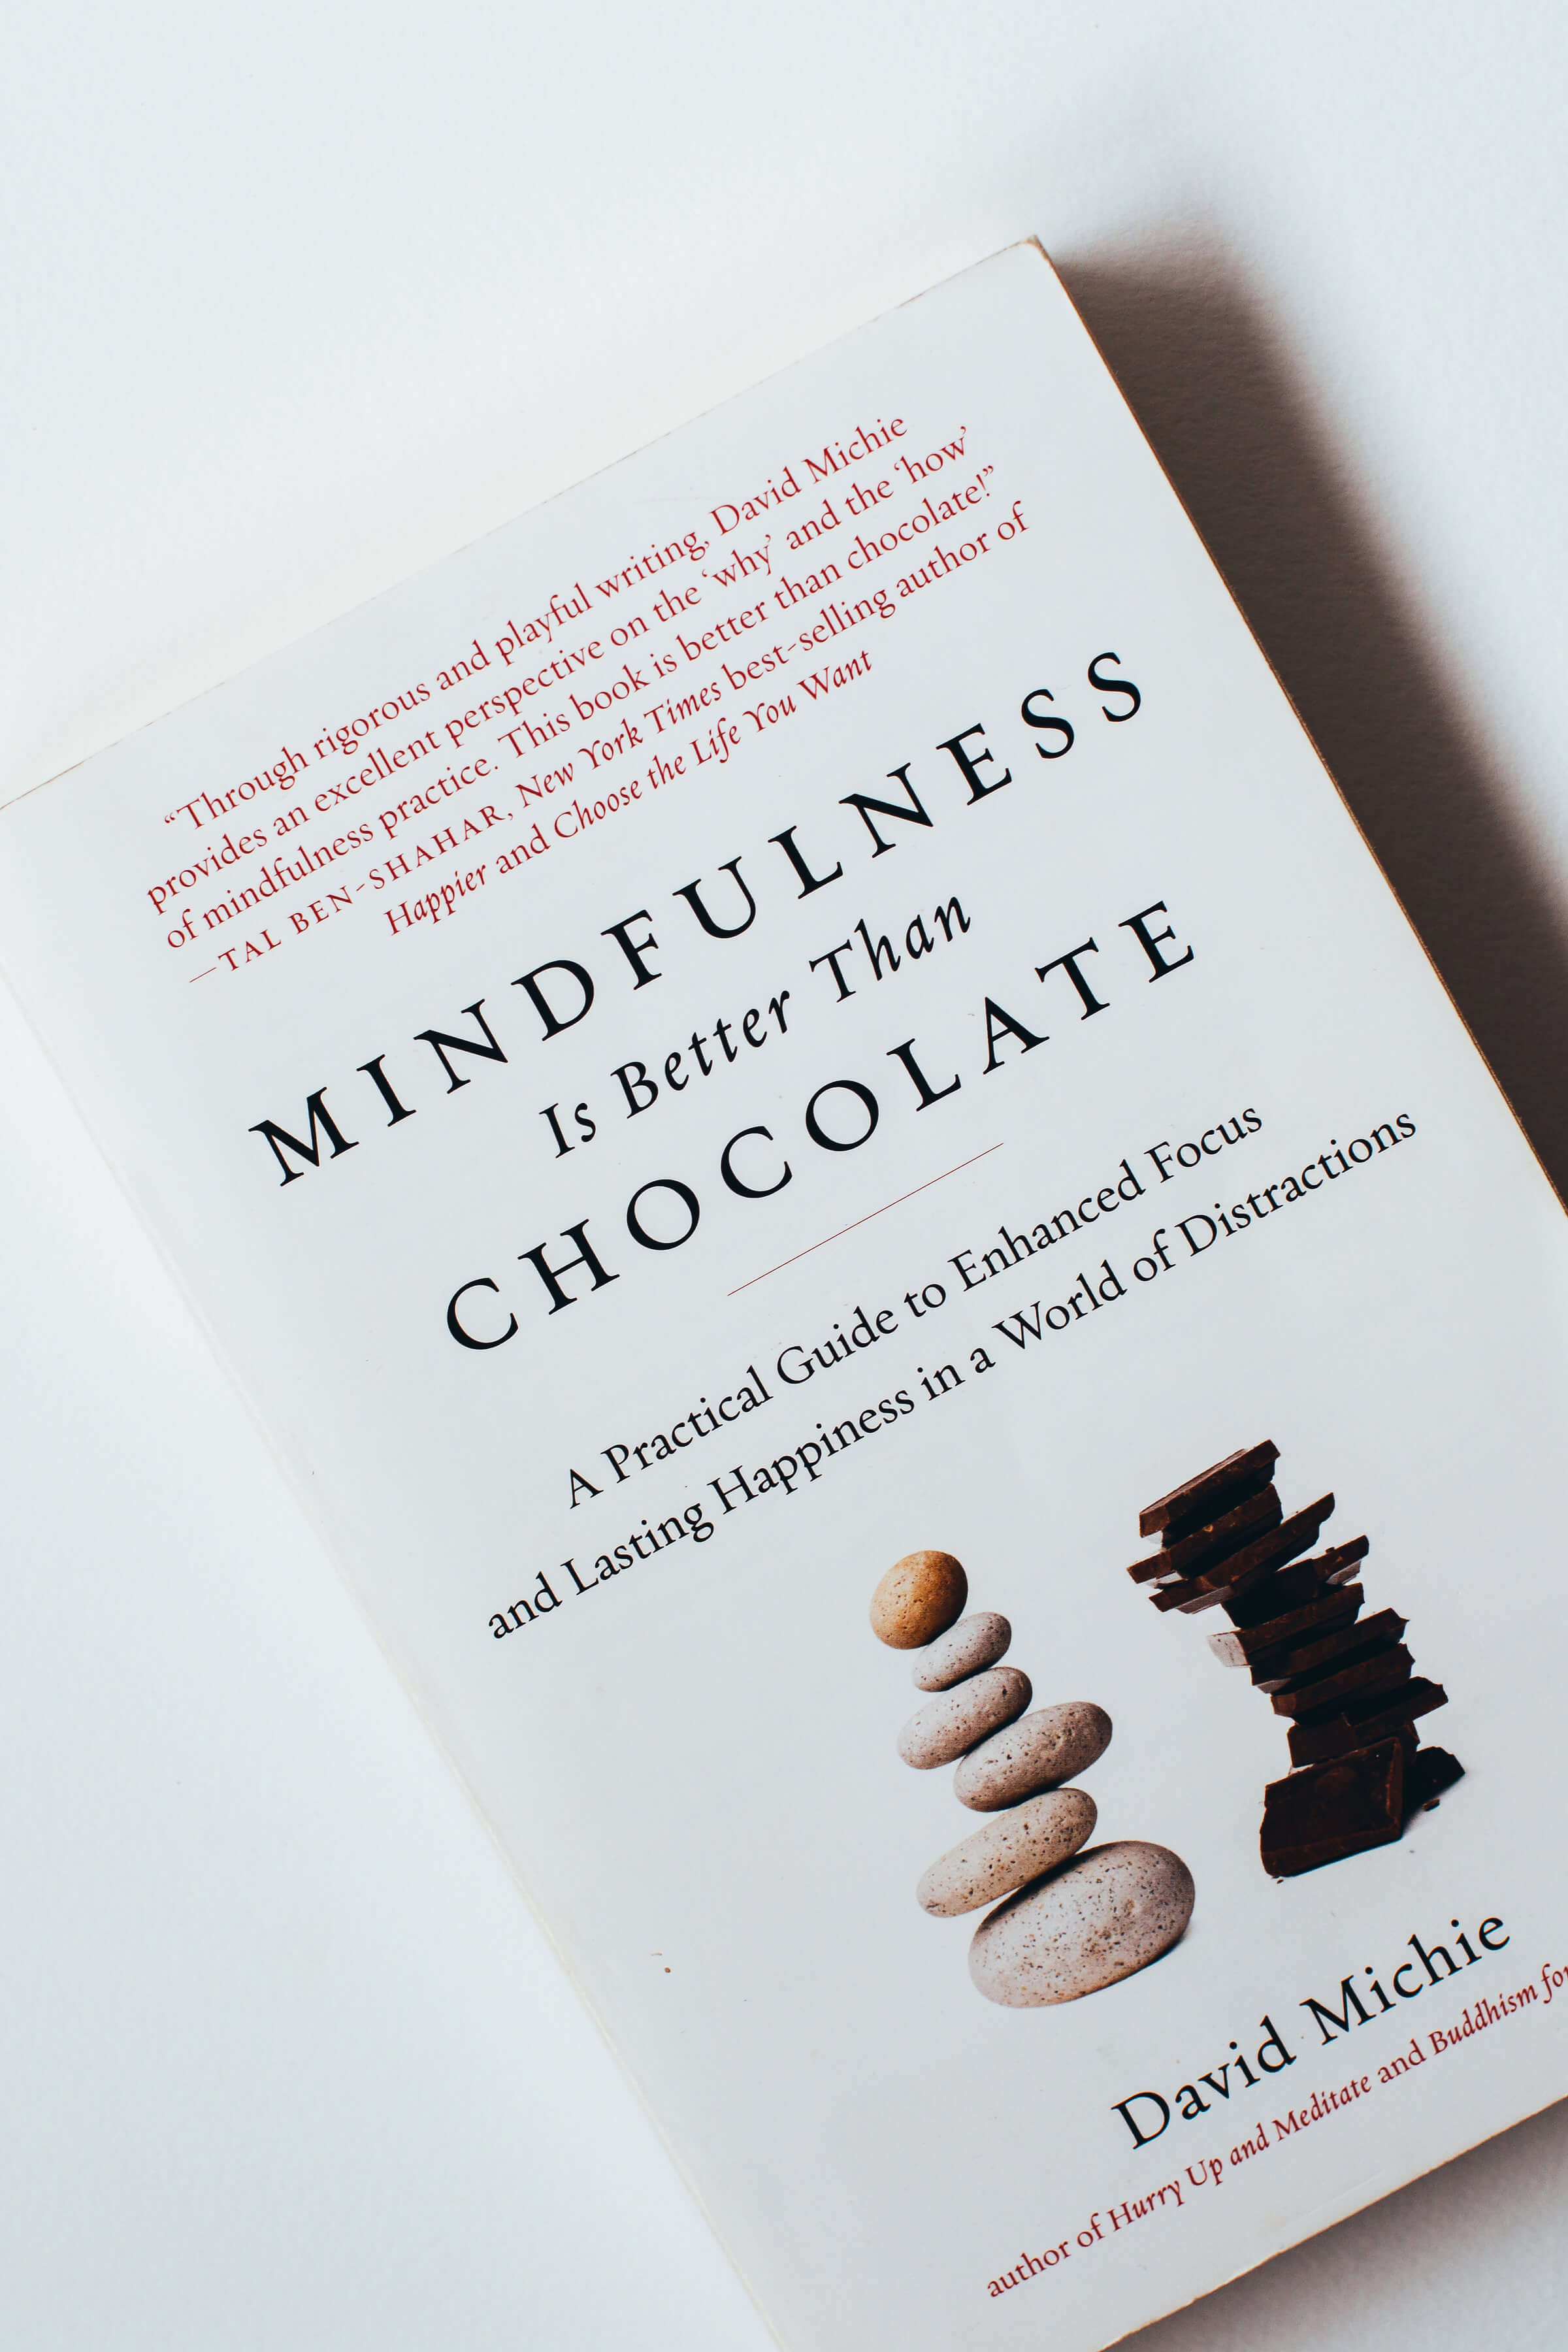 Mindfullness is better than chocolate